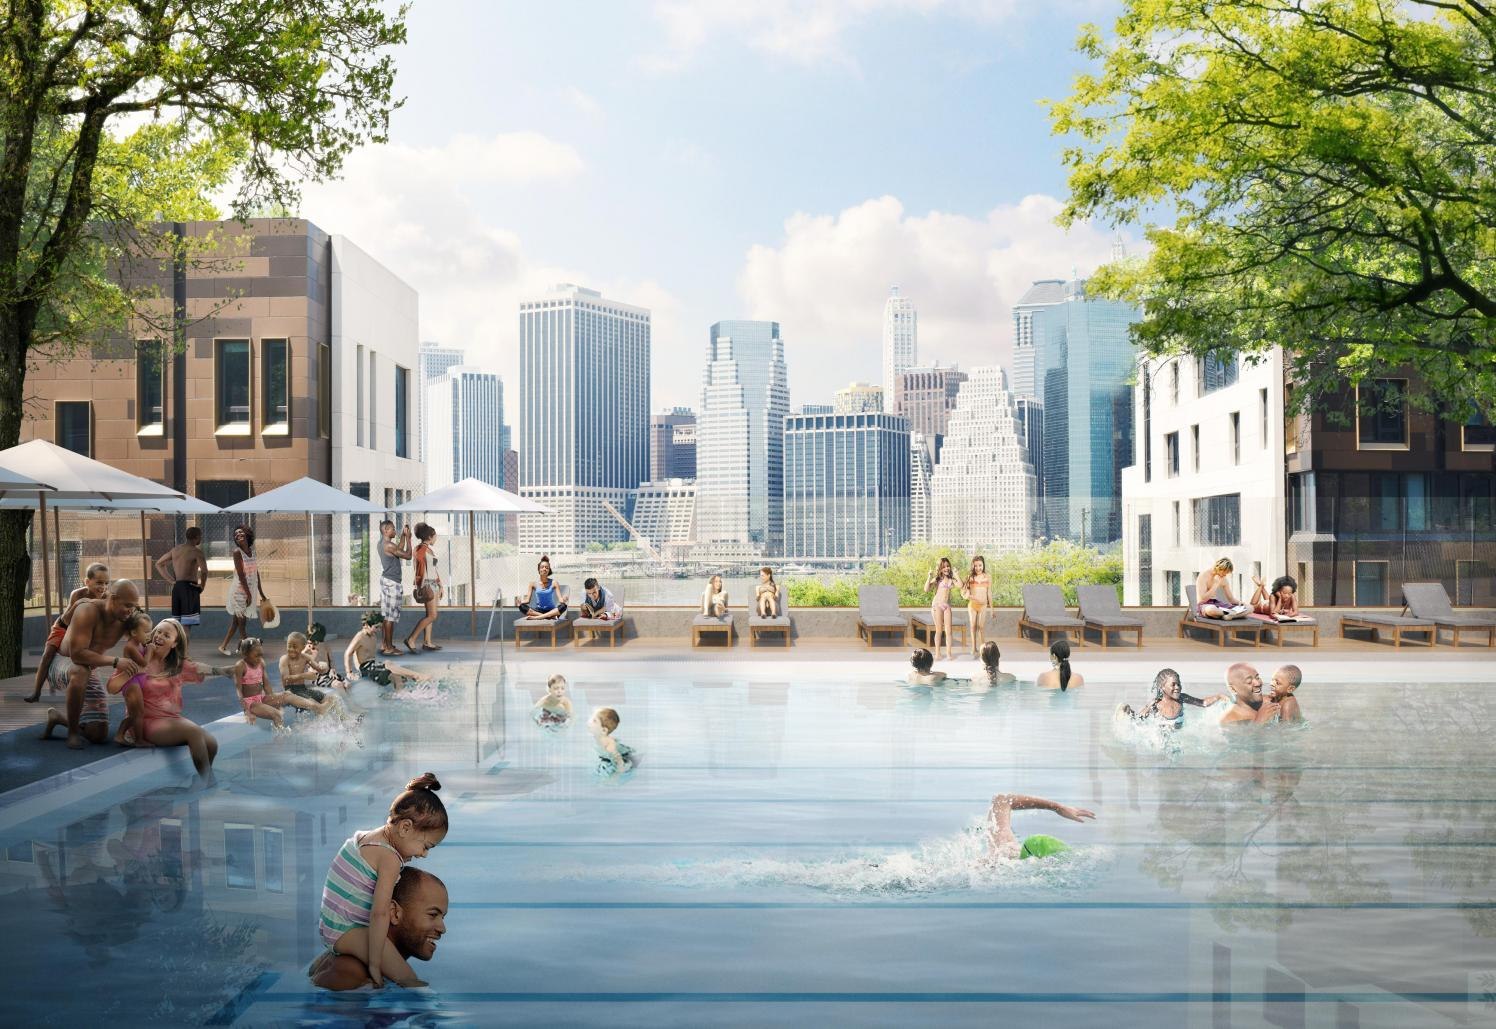 Brooklyn heights is getting a permanent public pool brooklyn bridge park for The heights swimming pool timetable